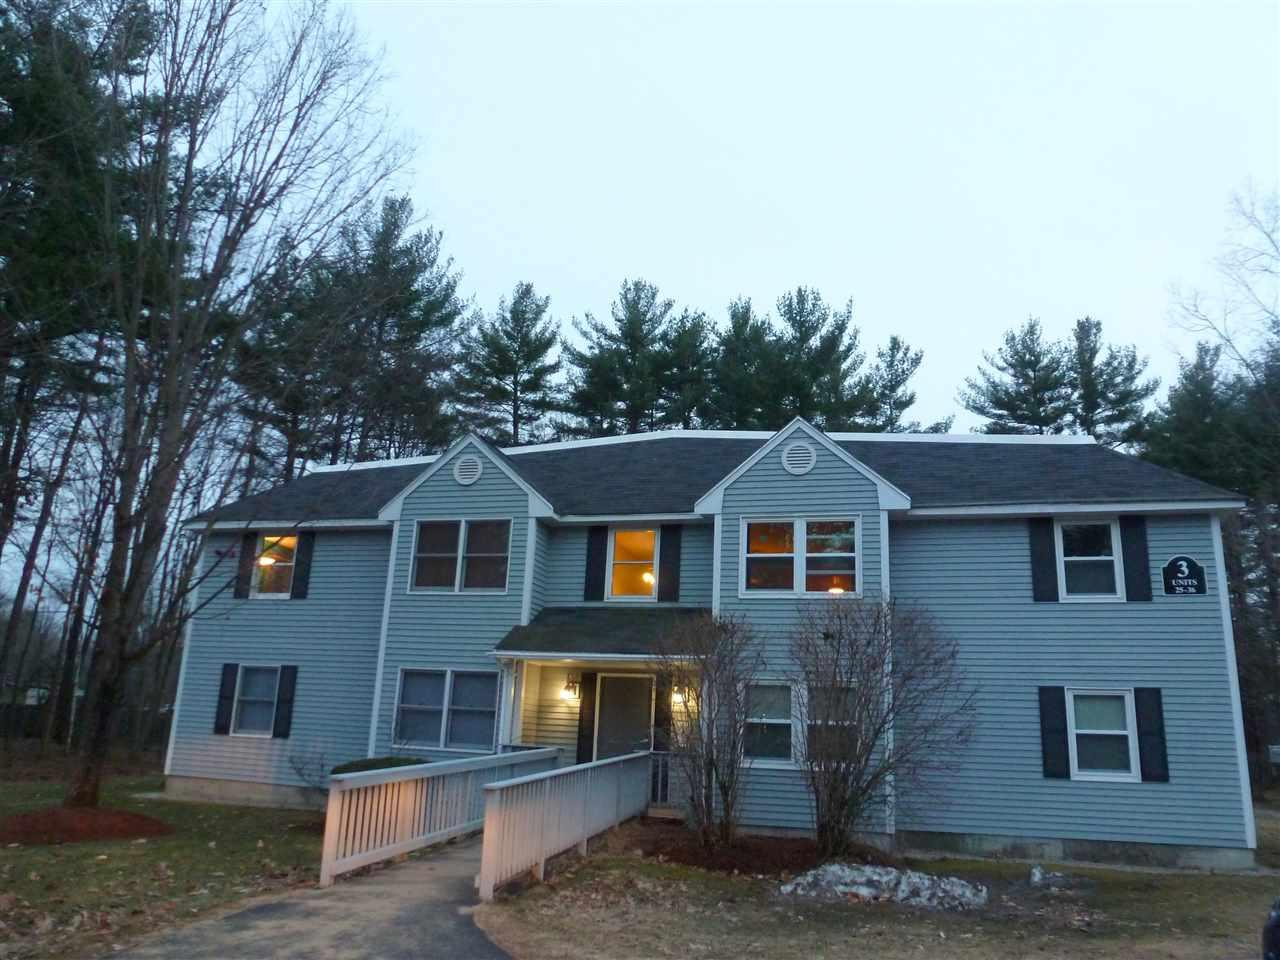 37 Alice Dr 26 Concord Nh Mls 4672268 Better Homes